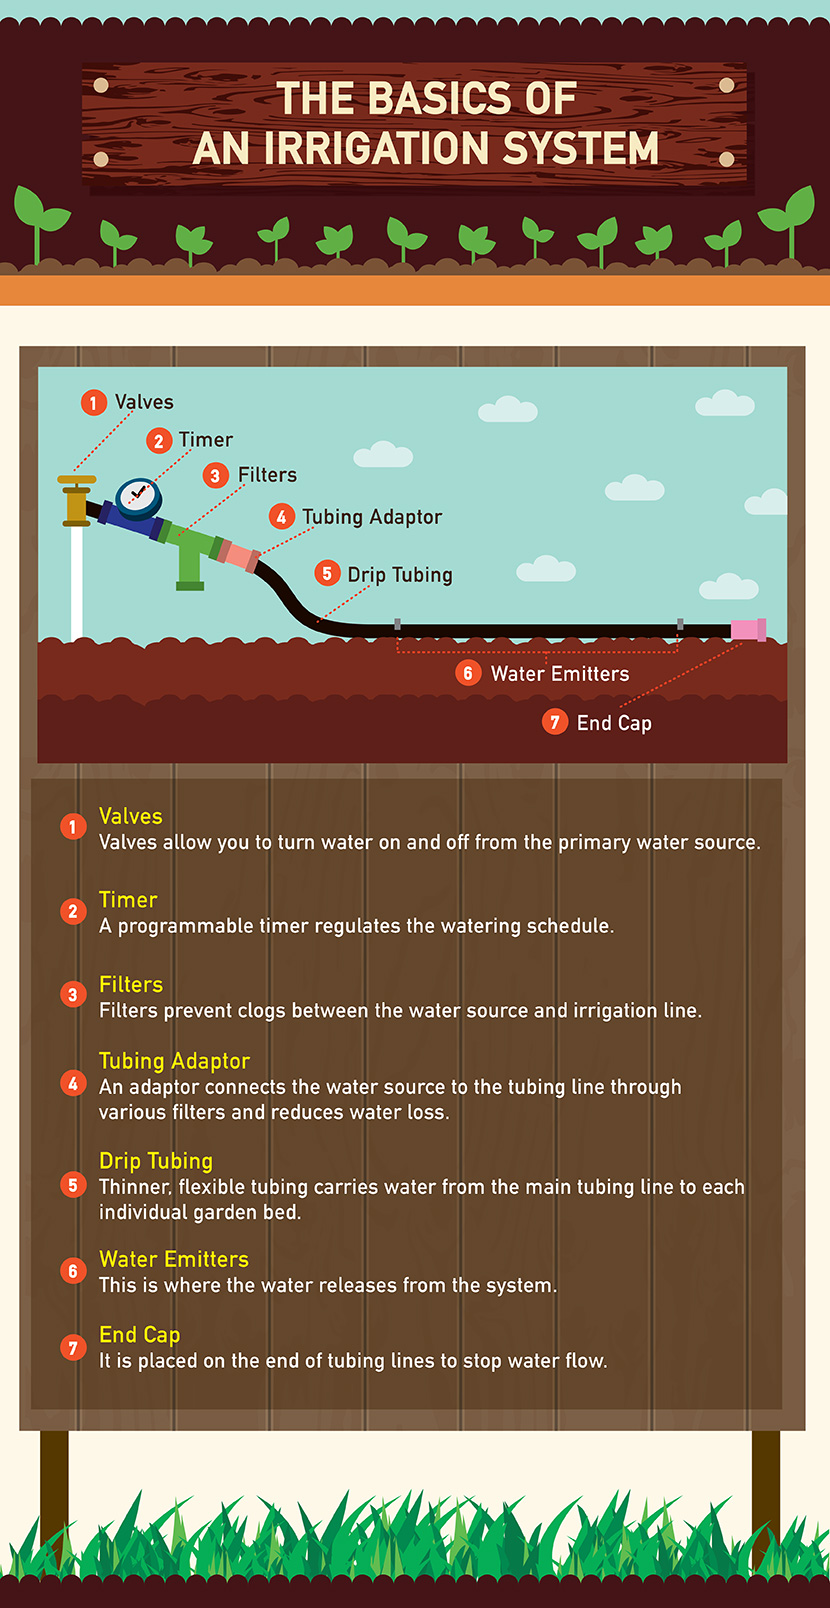 Explains the Basics of and Irrigation System